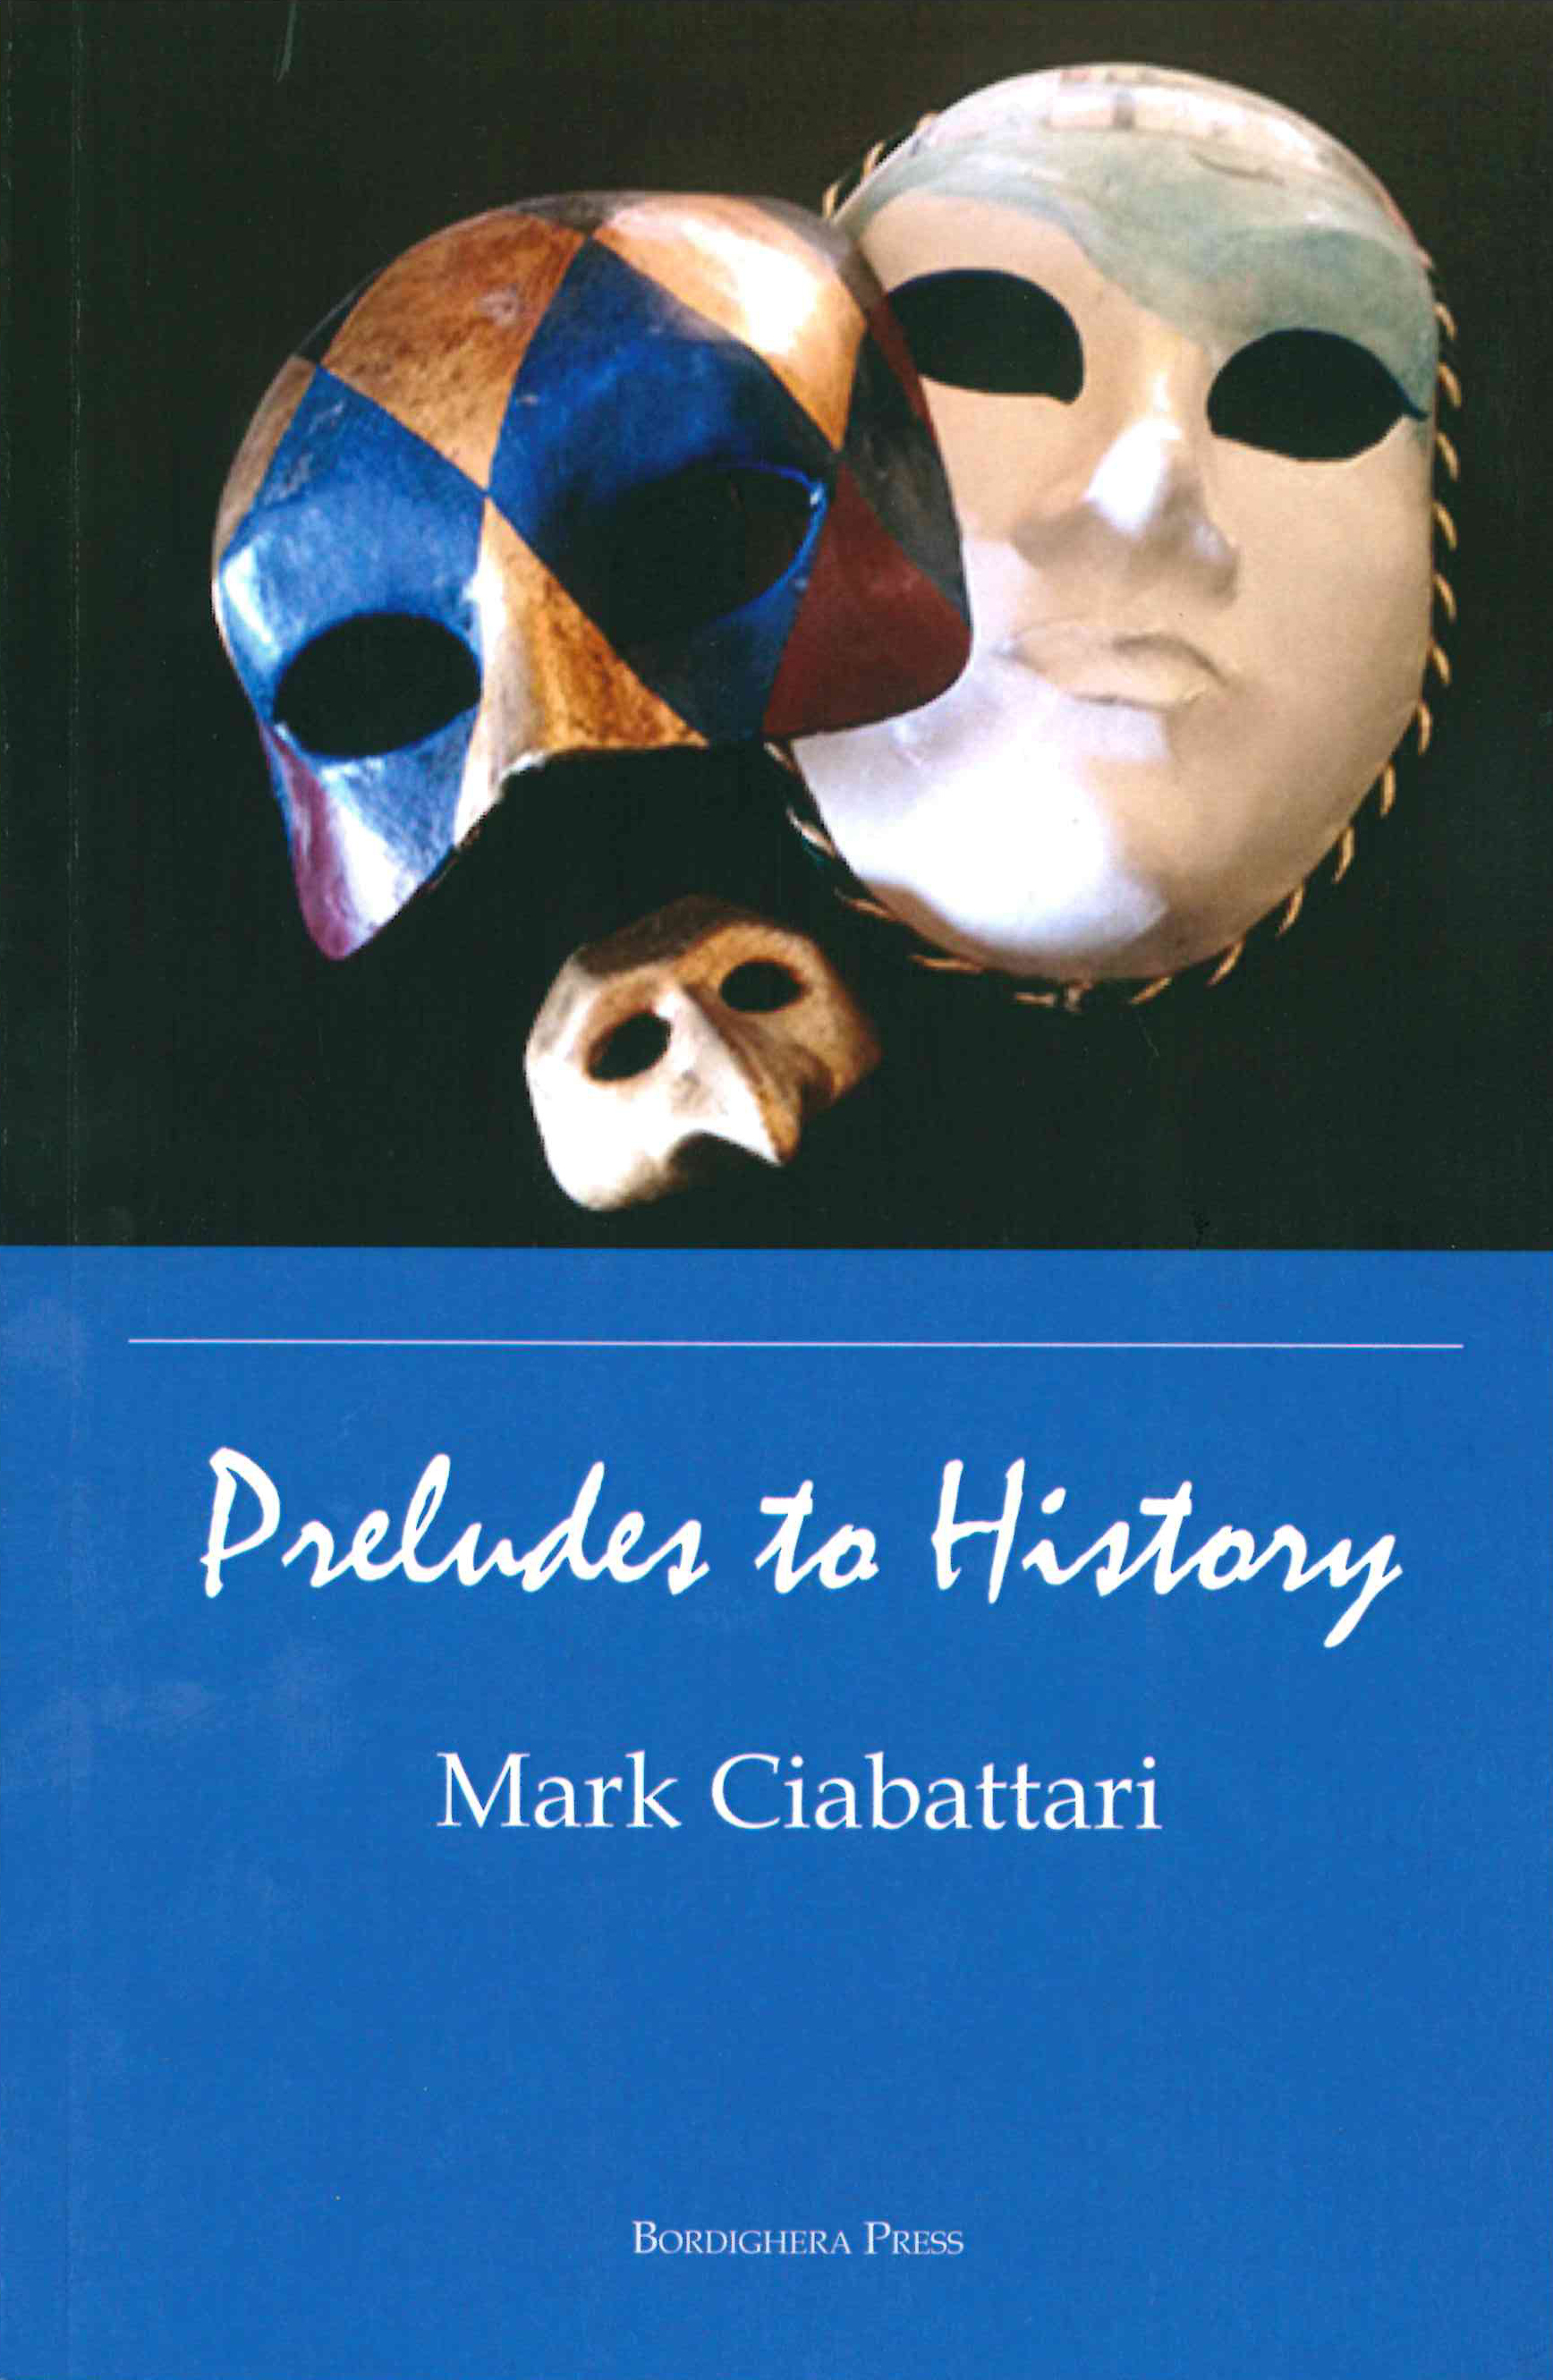 Preludes to History